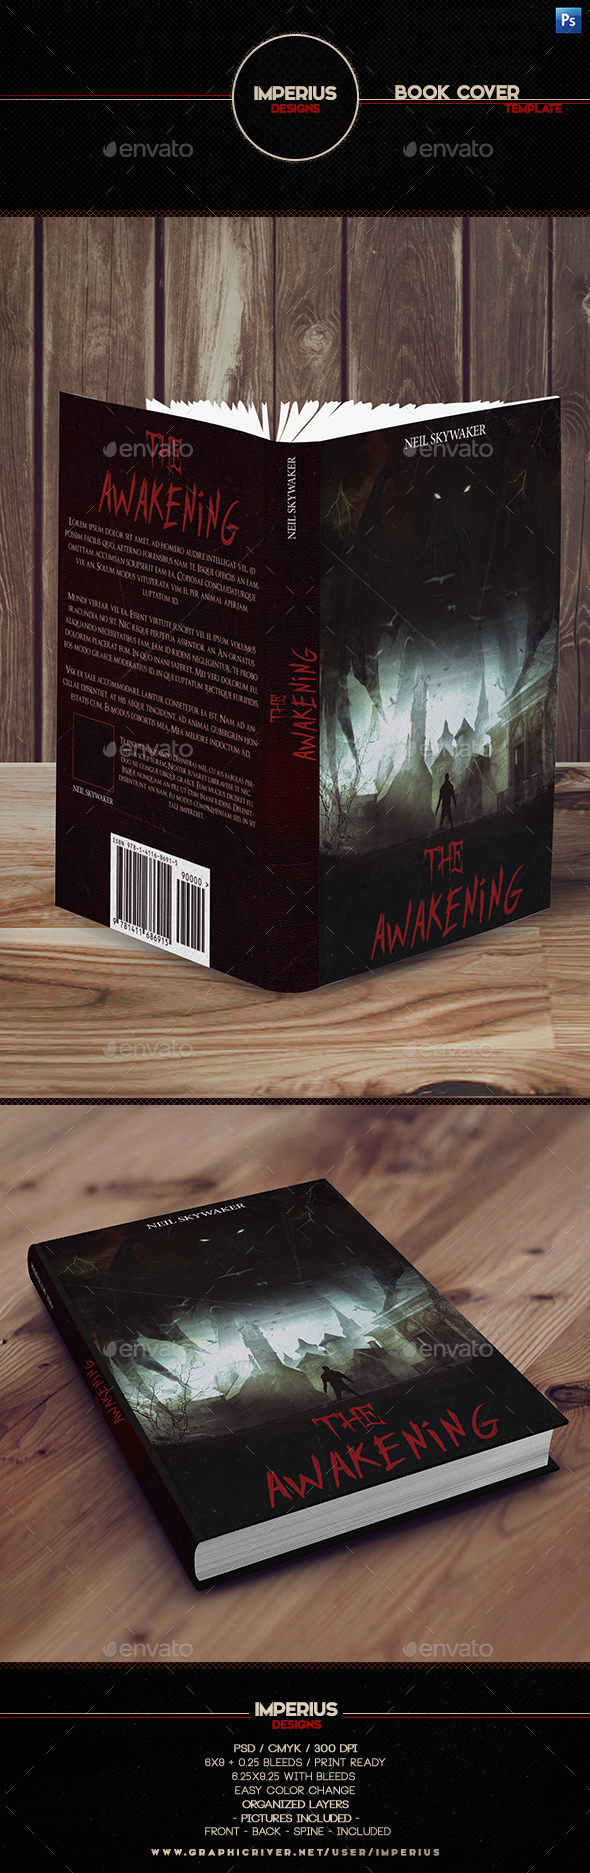 The Awakening Book Cover - Print Templates